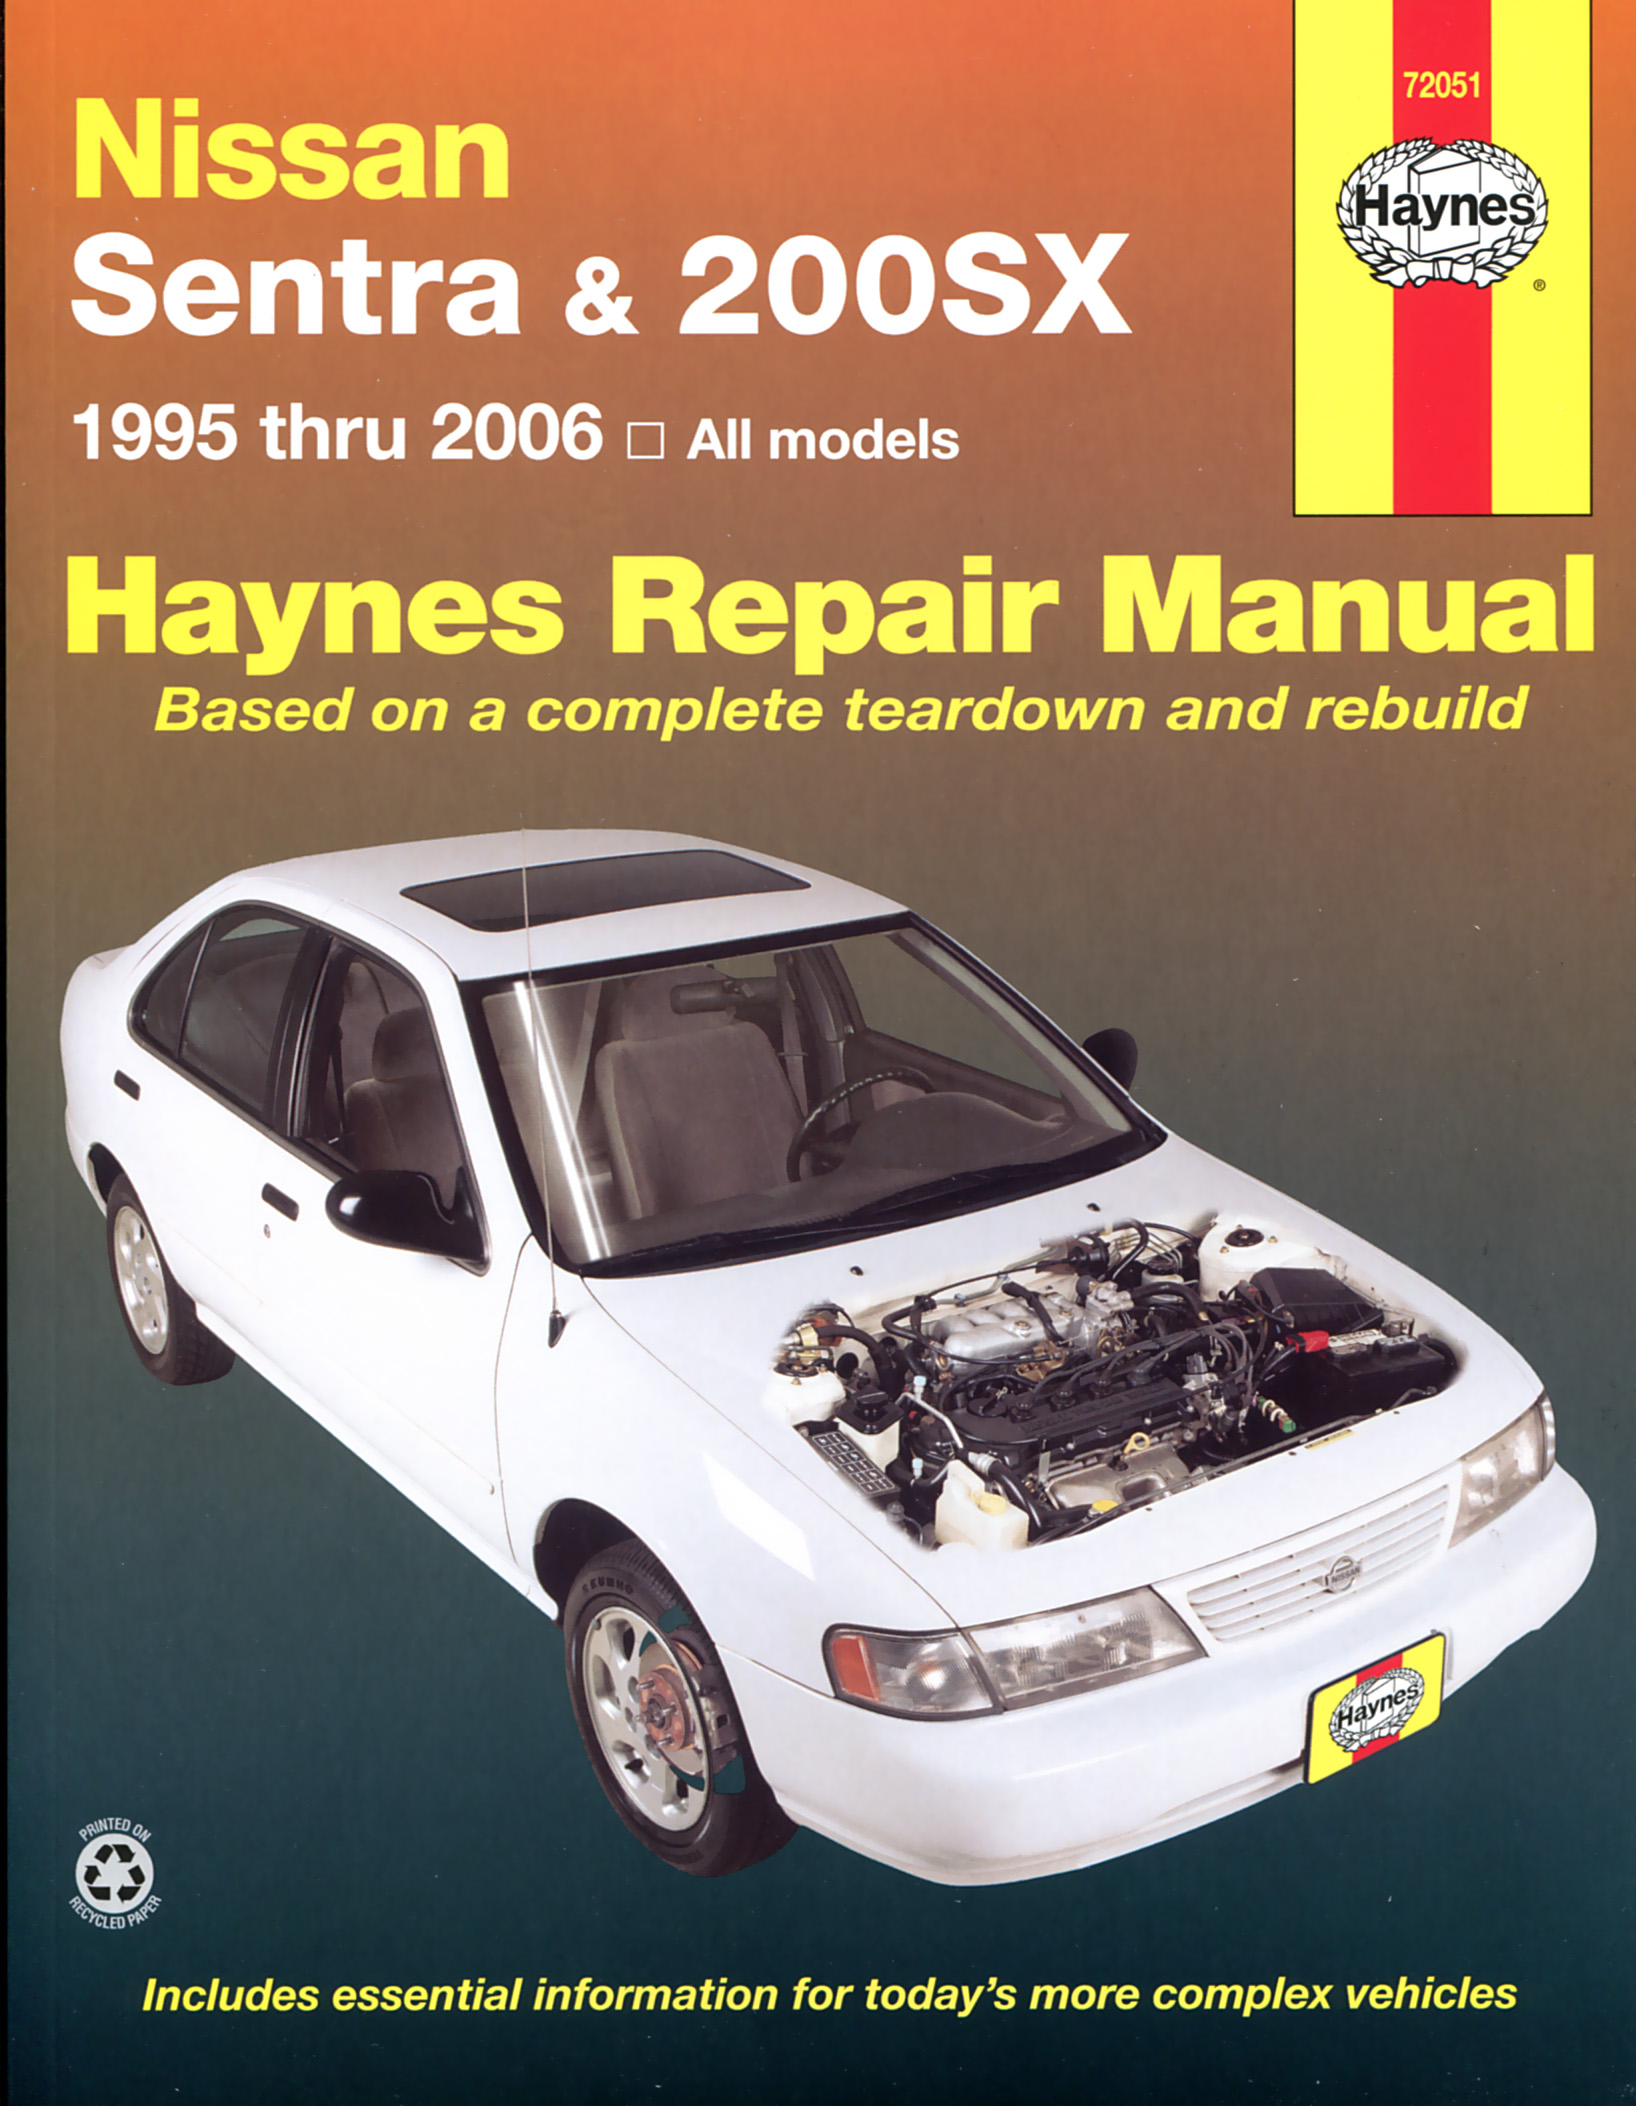 Enlarge Nissan Sentra & 200SX (95-06) Haynes Repair Manual